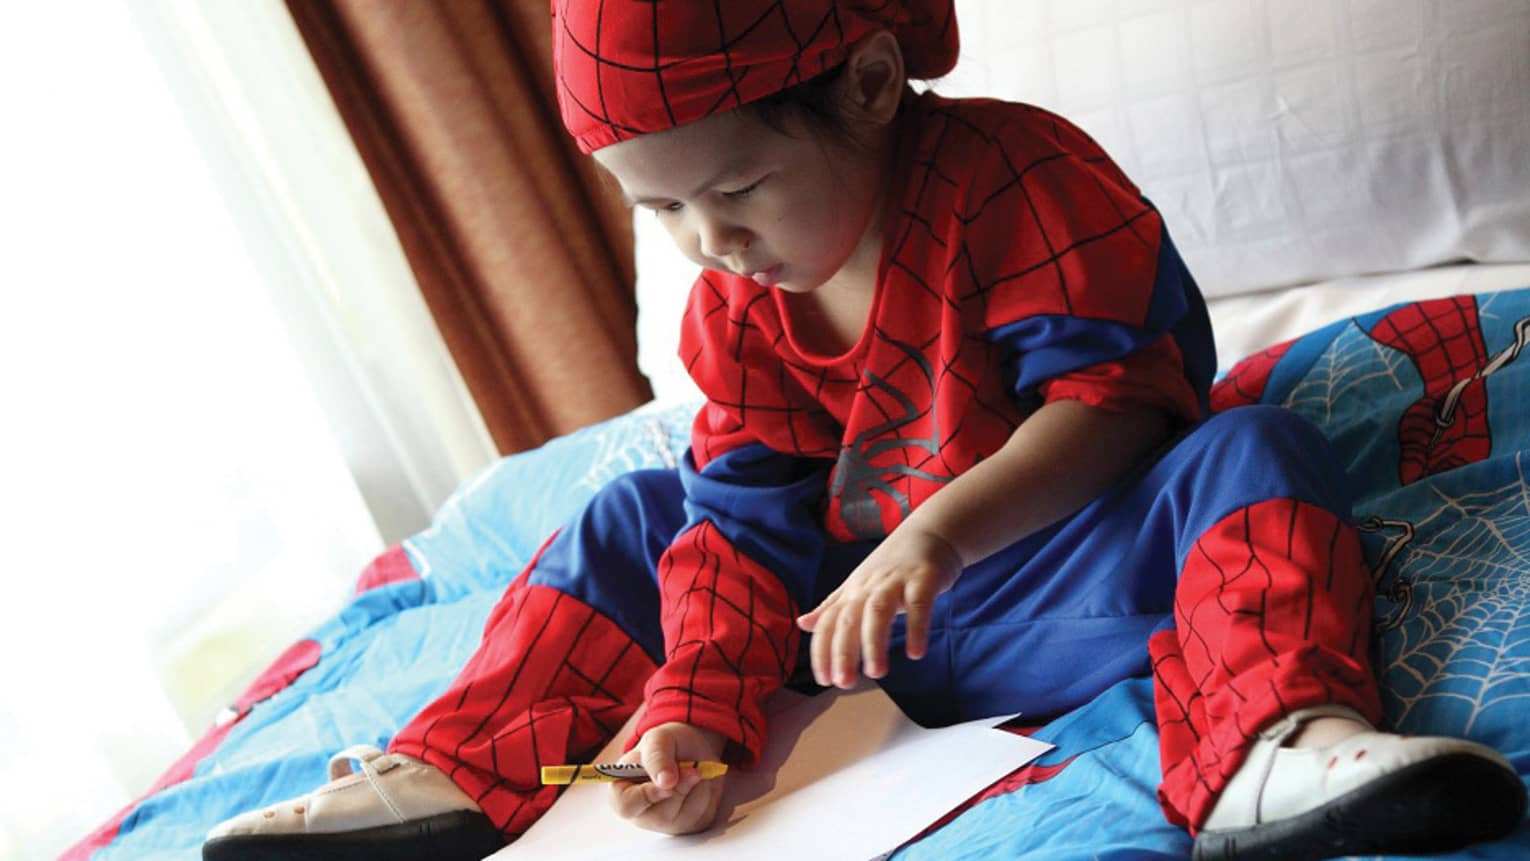 Young child wearing Spiderman costume sits on bed, colours in book